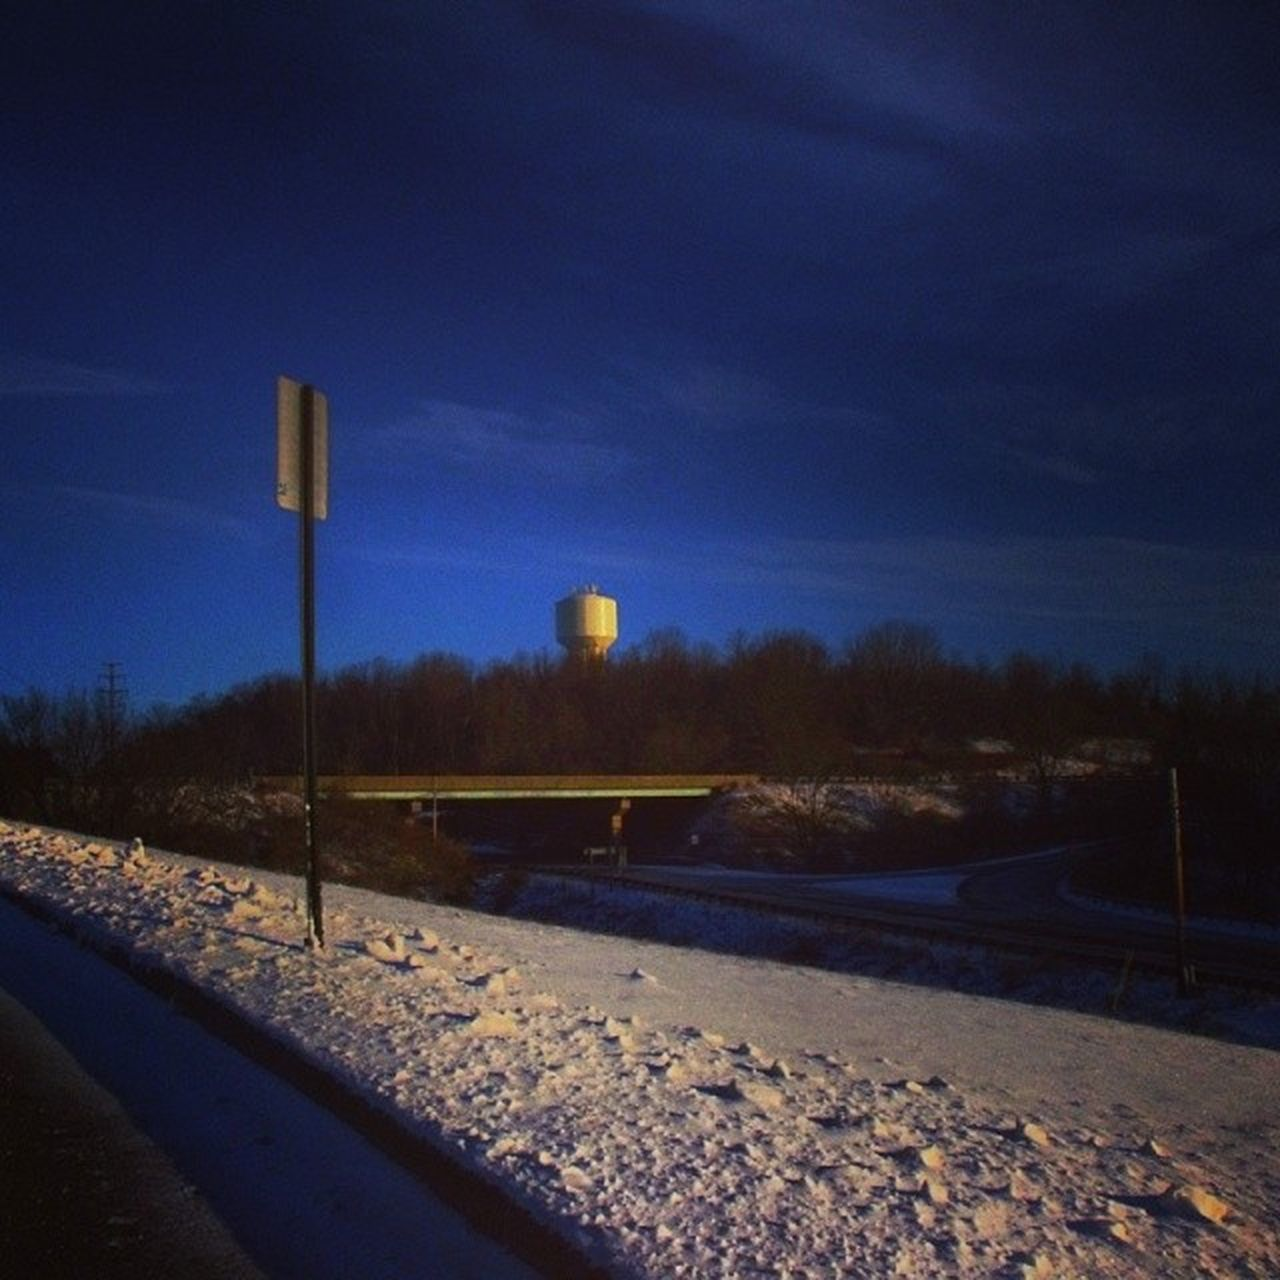 road, cold temperature, blue, snow, transportation, no people, sky, winter, nature, outdoors, tree, water tower - storage tank, day